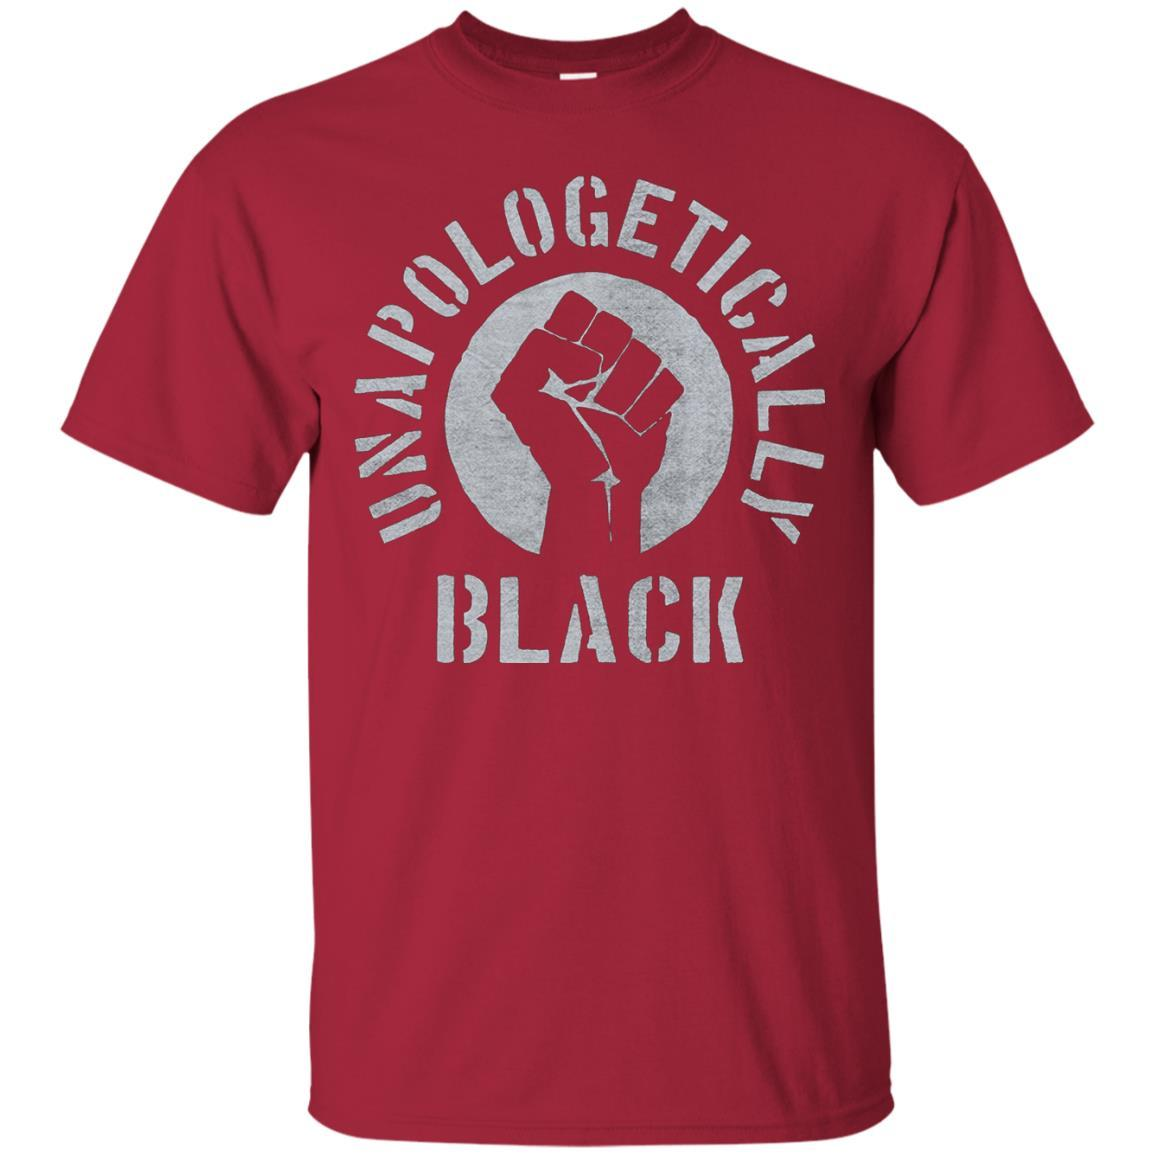 Unapologetically Black shirt